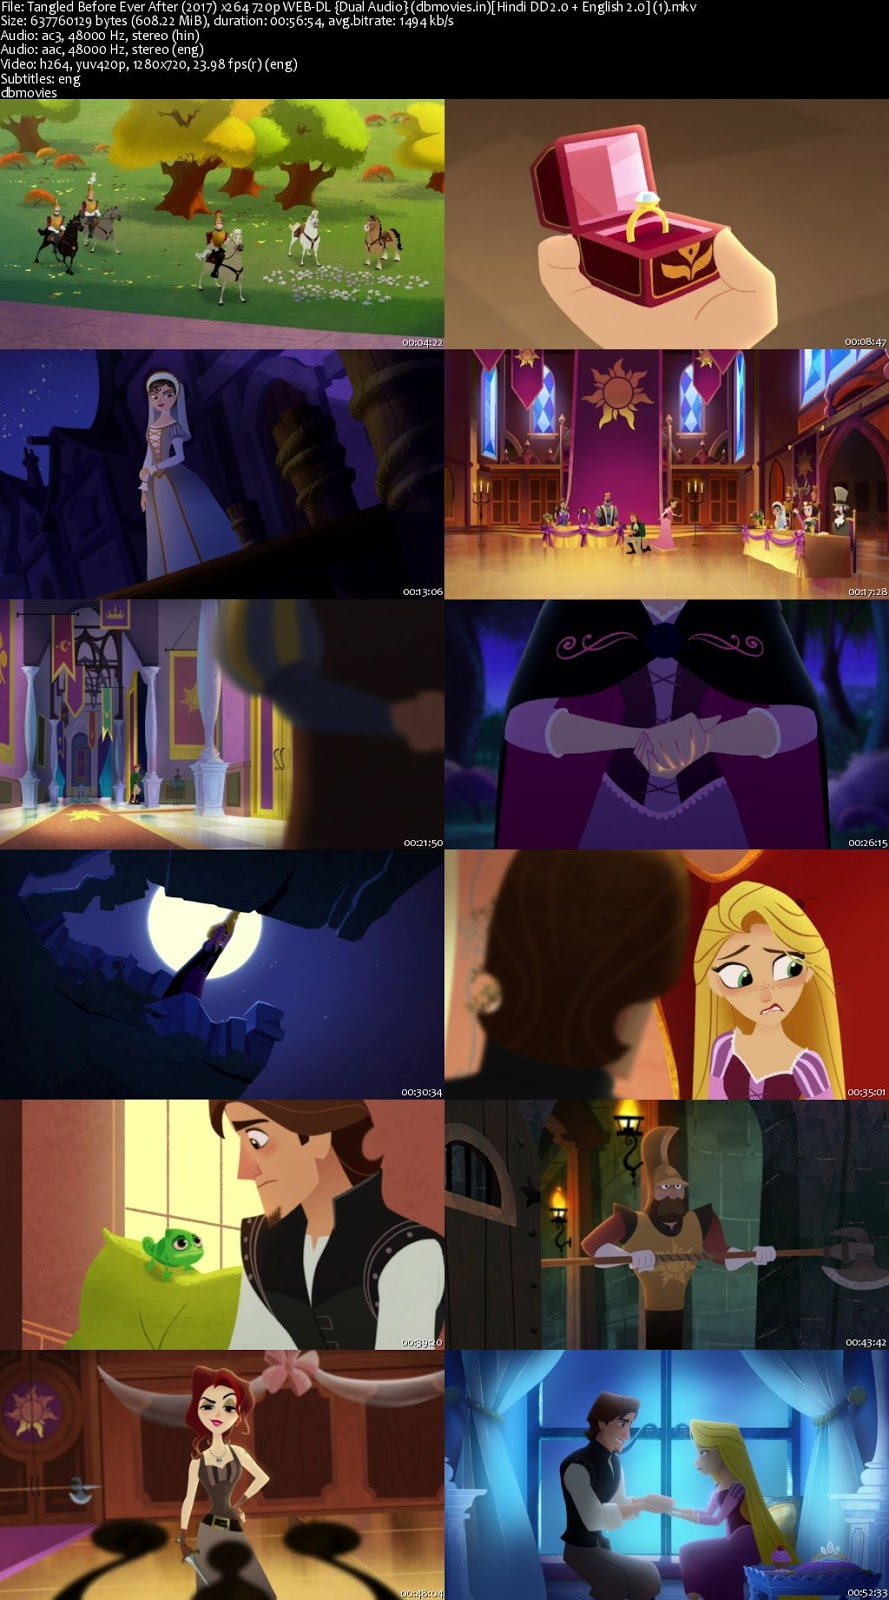 screen shot Tangled Before Ever After 2017 Full Movie Download Dual Audio 720p